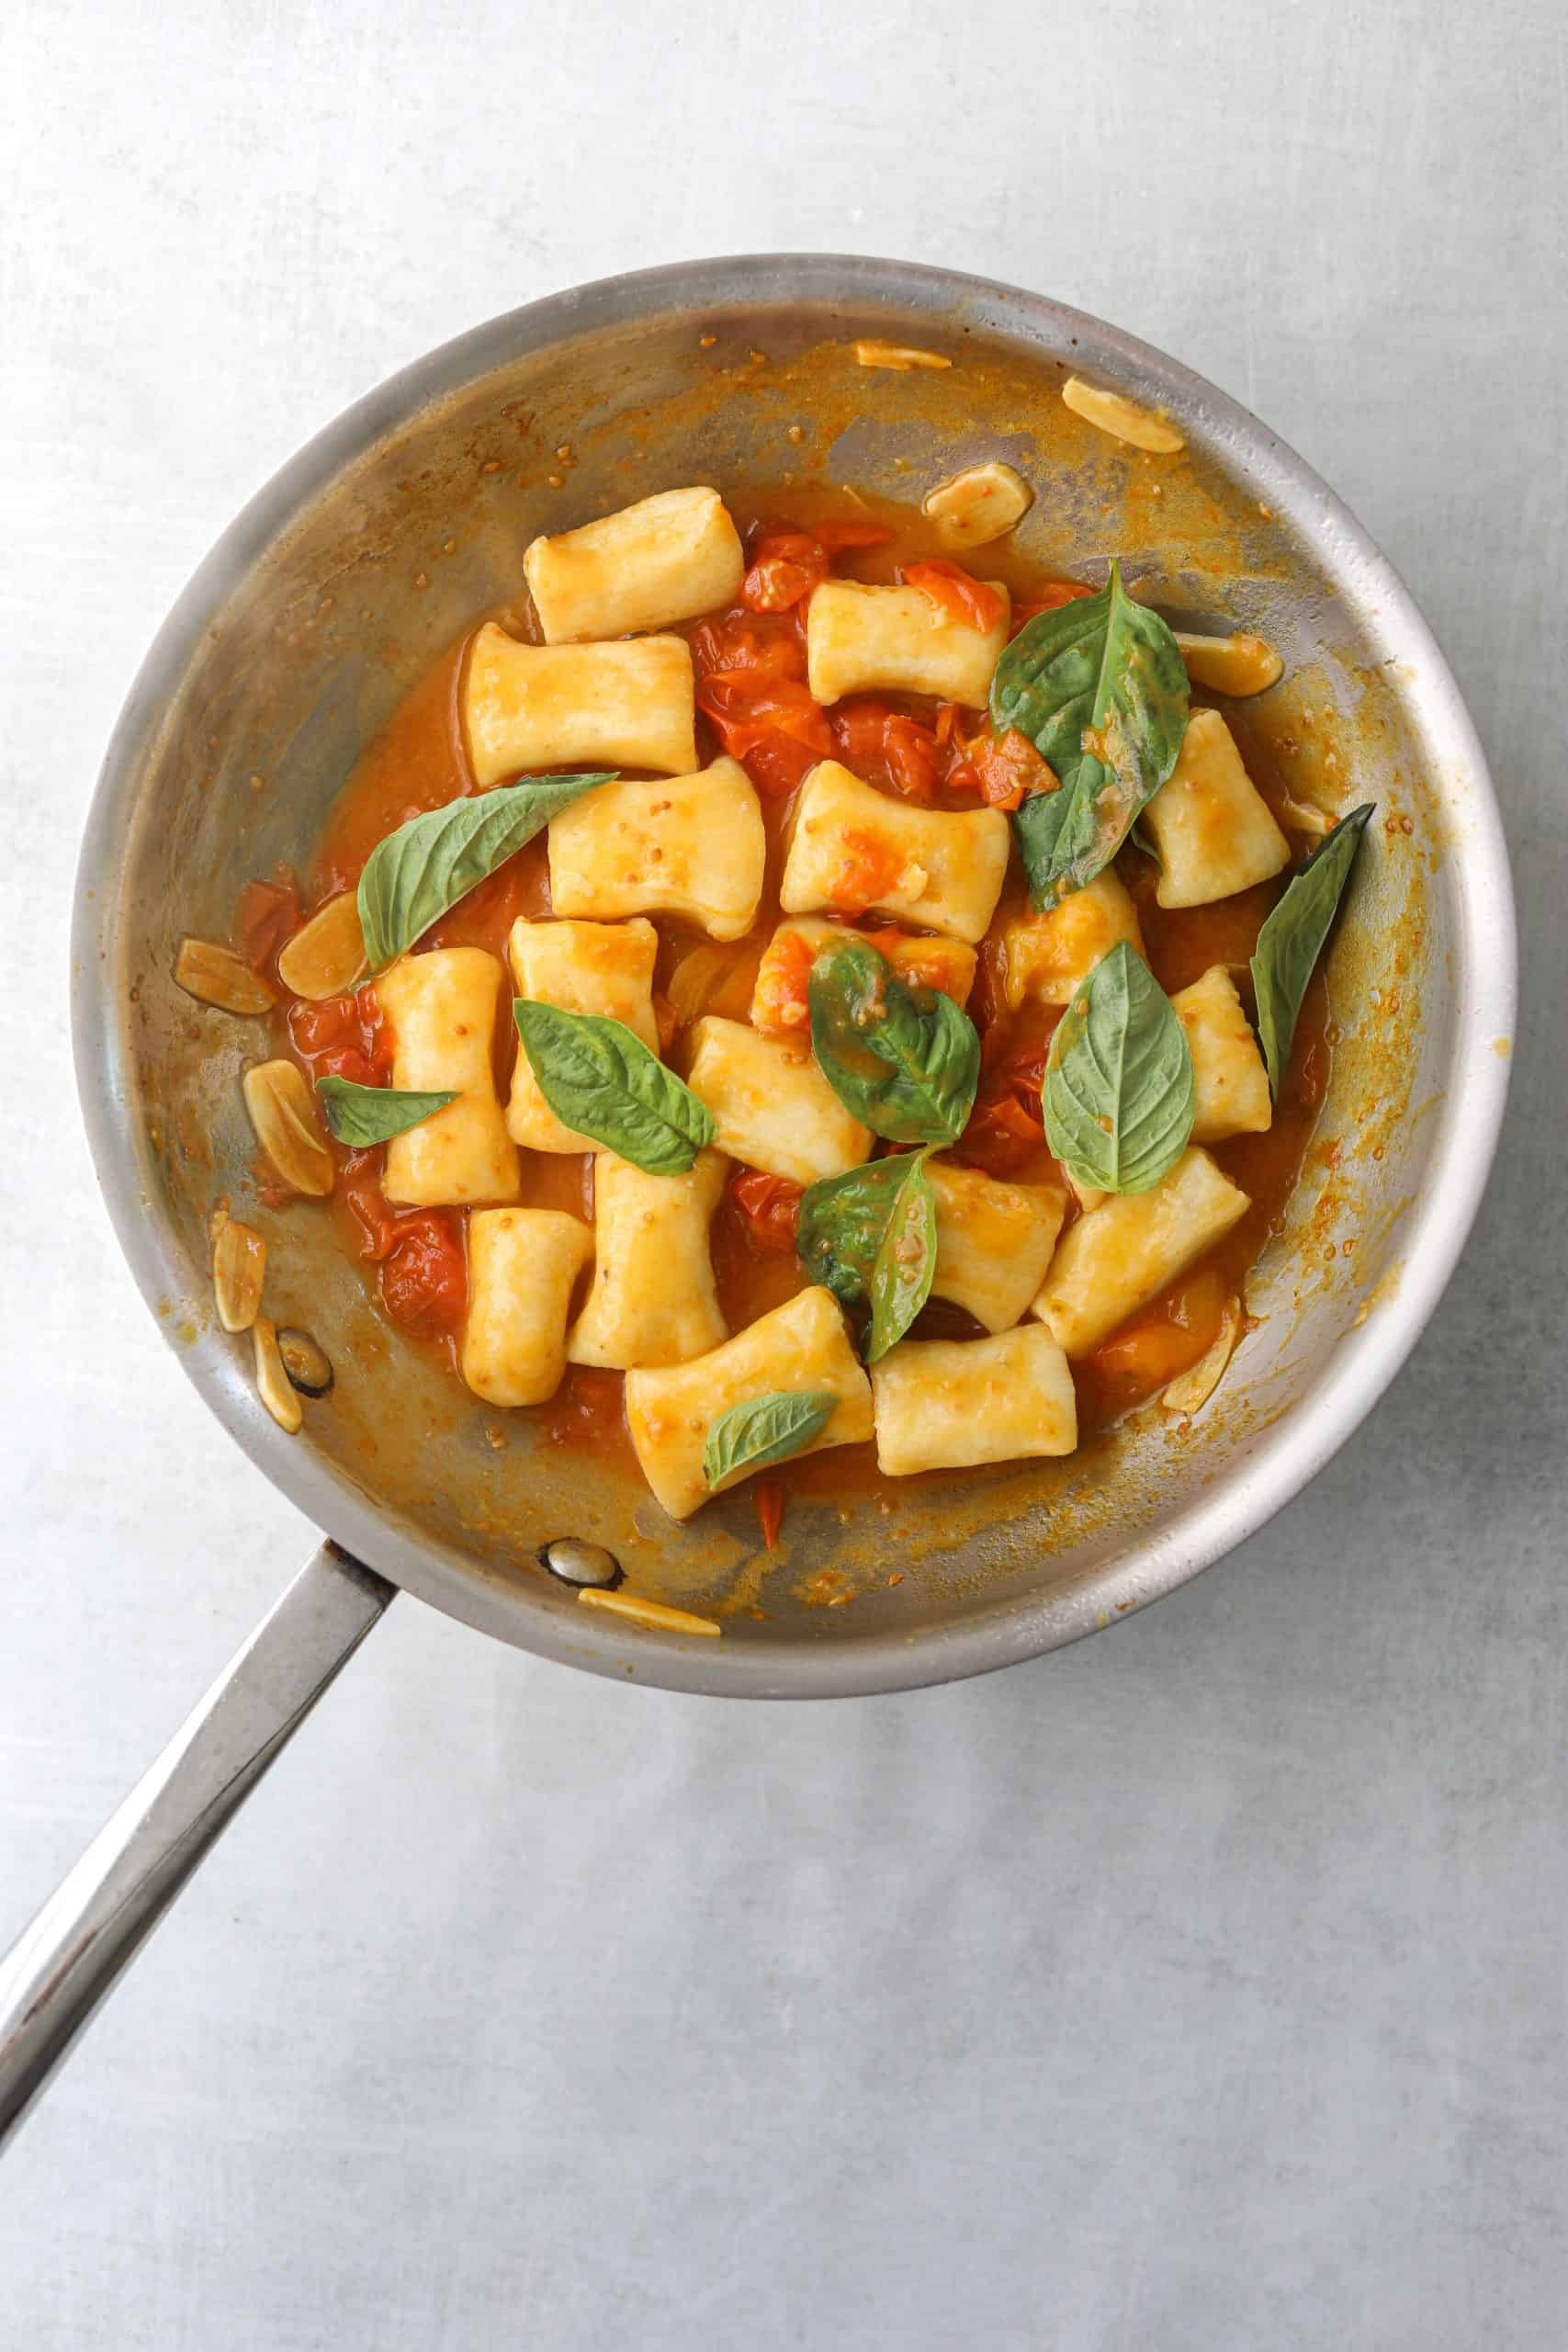 a saute pan filled with ricotta gnocchi, cherry tomato sauce, sliced garlic and fresh basil